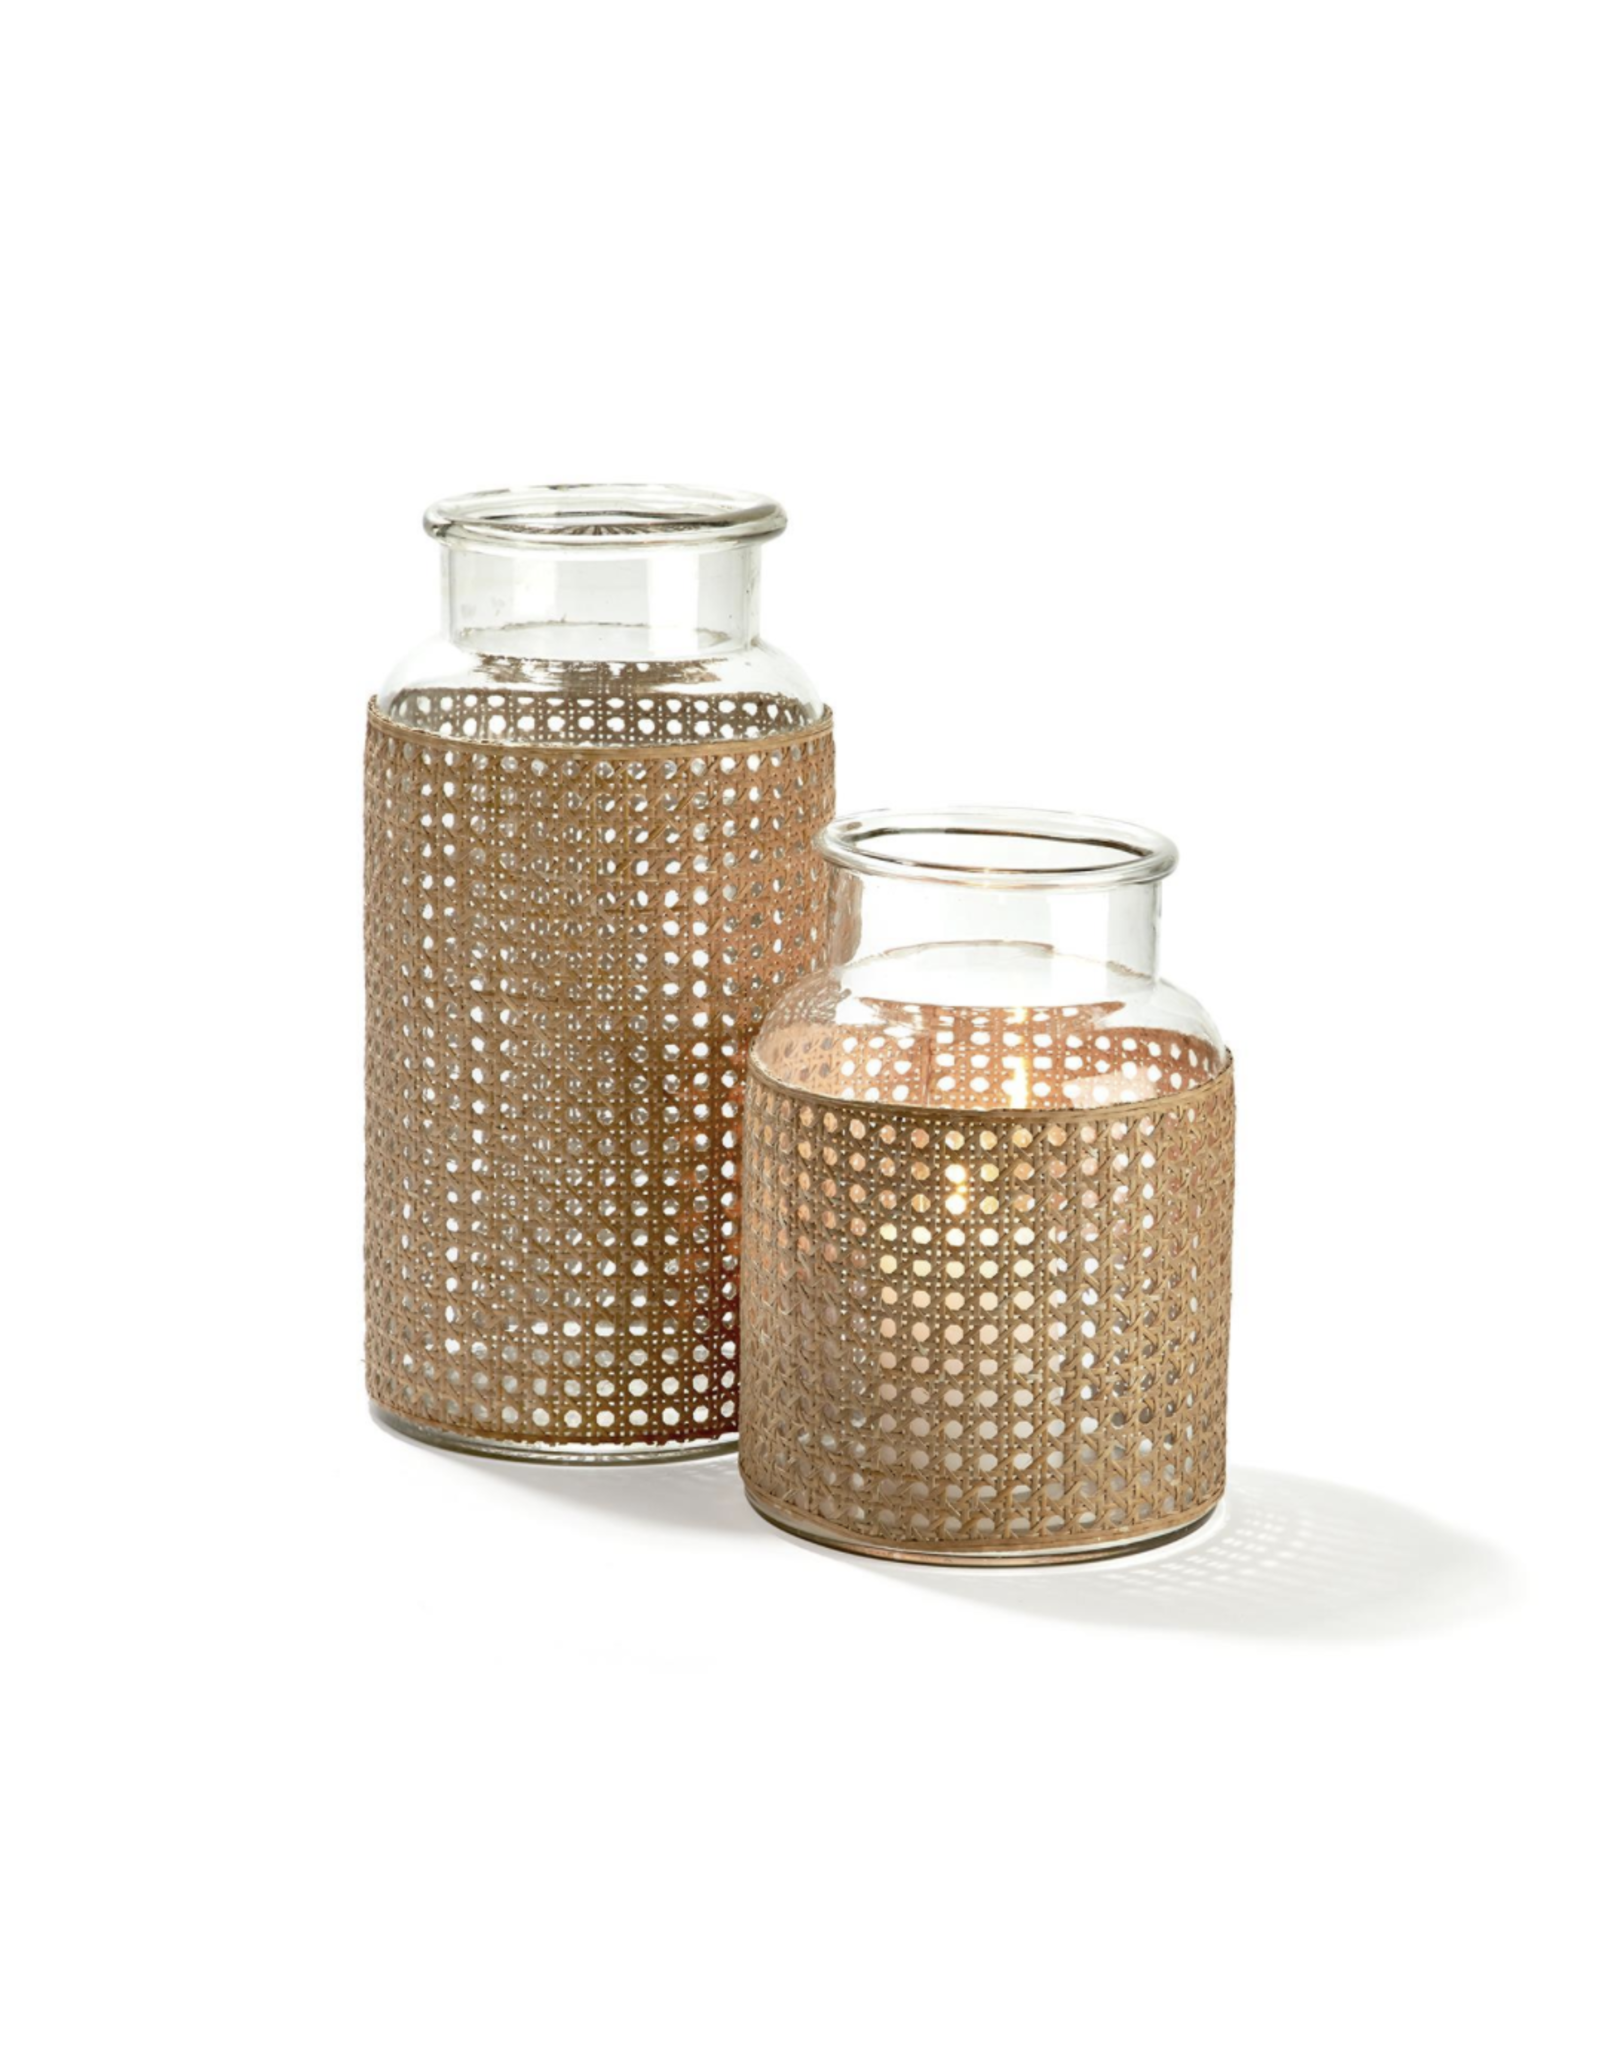 Oak + Arrow Interiors Cane Webbing Jar - Small